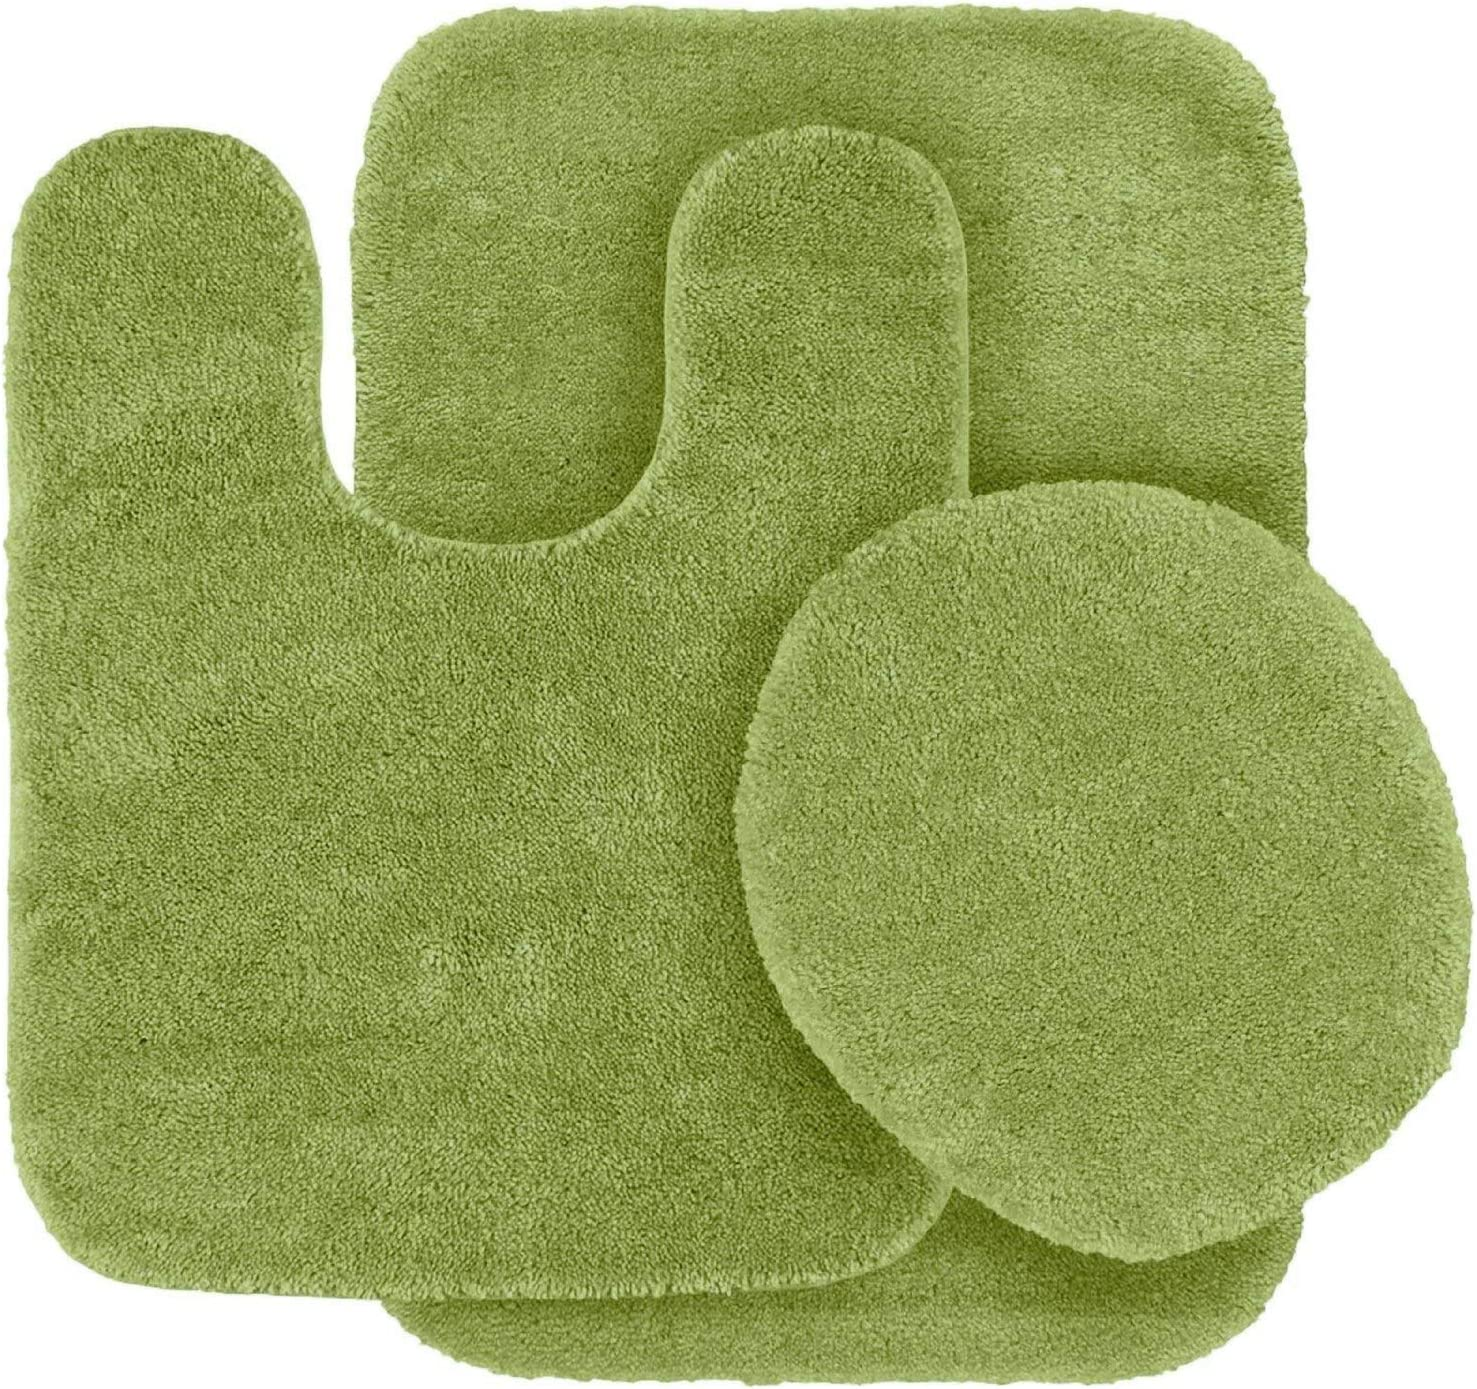 Better Home Style 3 Piece Bathroom Rug Set Bath Rug, Contour Mat, & Lid Cover Non-Slip with Rubber Backing Solid Color (Lime / Sage Green)